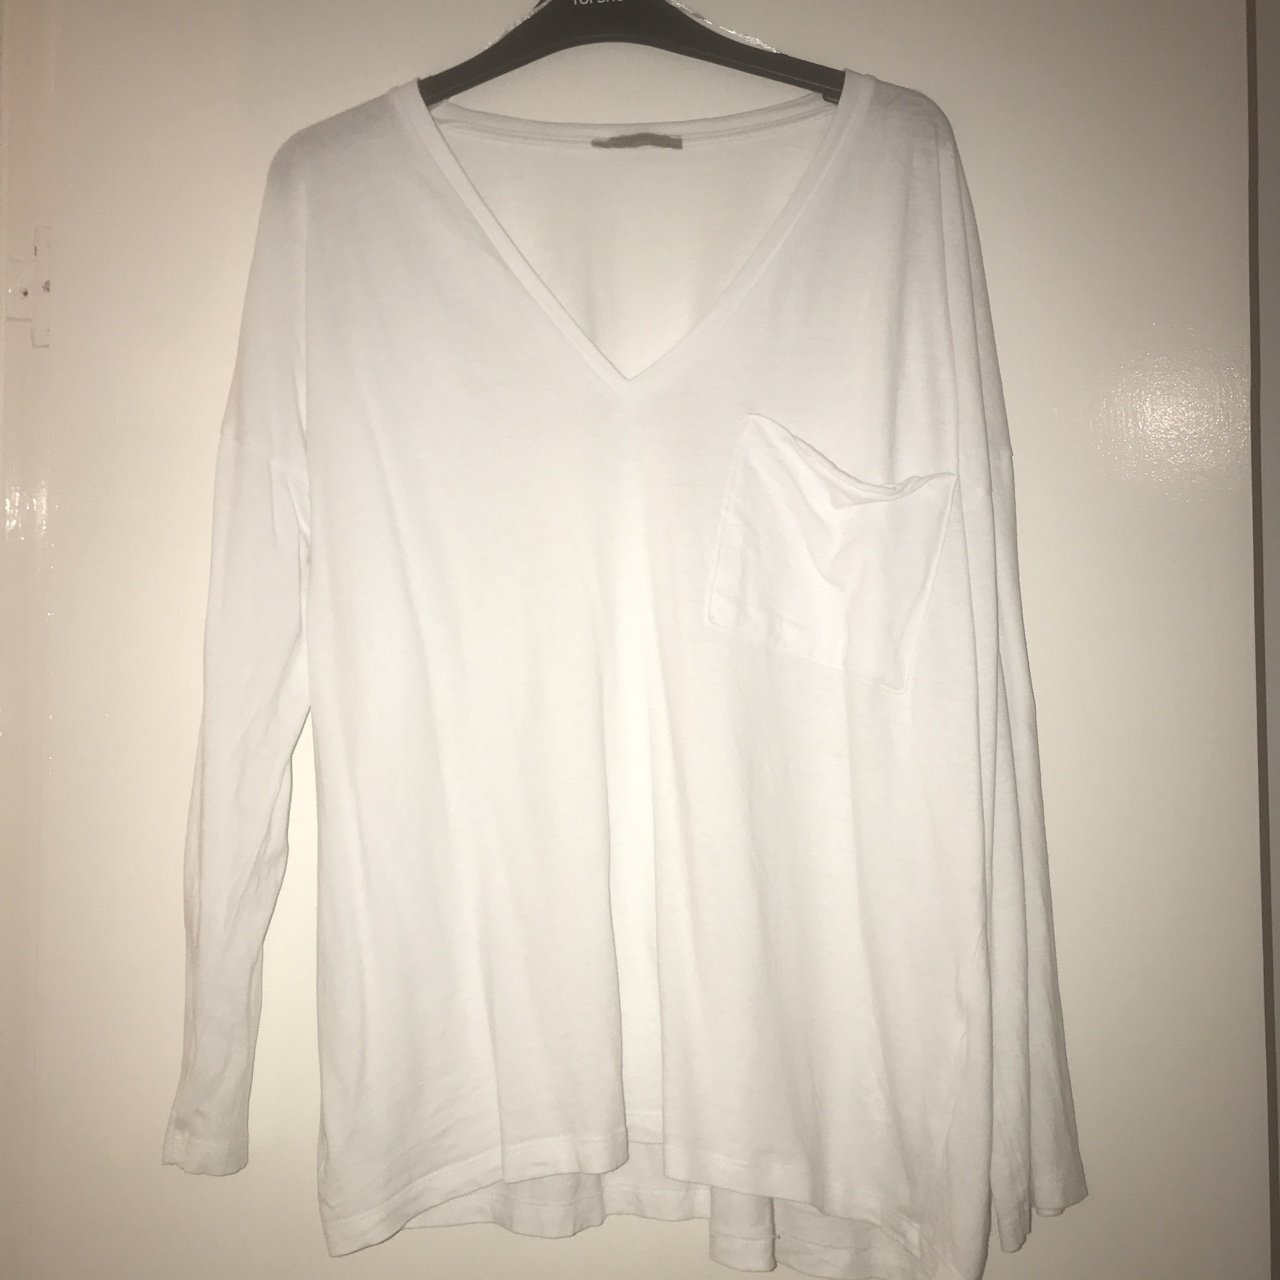 cd57930f @ecekaragoz. 8 months ago. London, United Kingdom. Zara white v neck  oversized casual t shirt with front pocket, size small ...